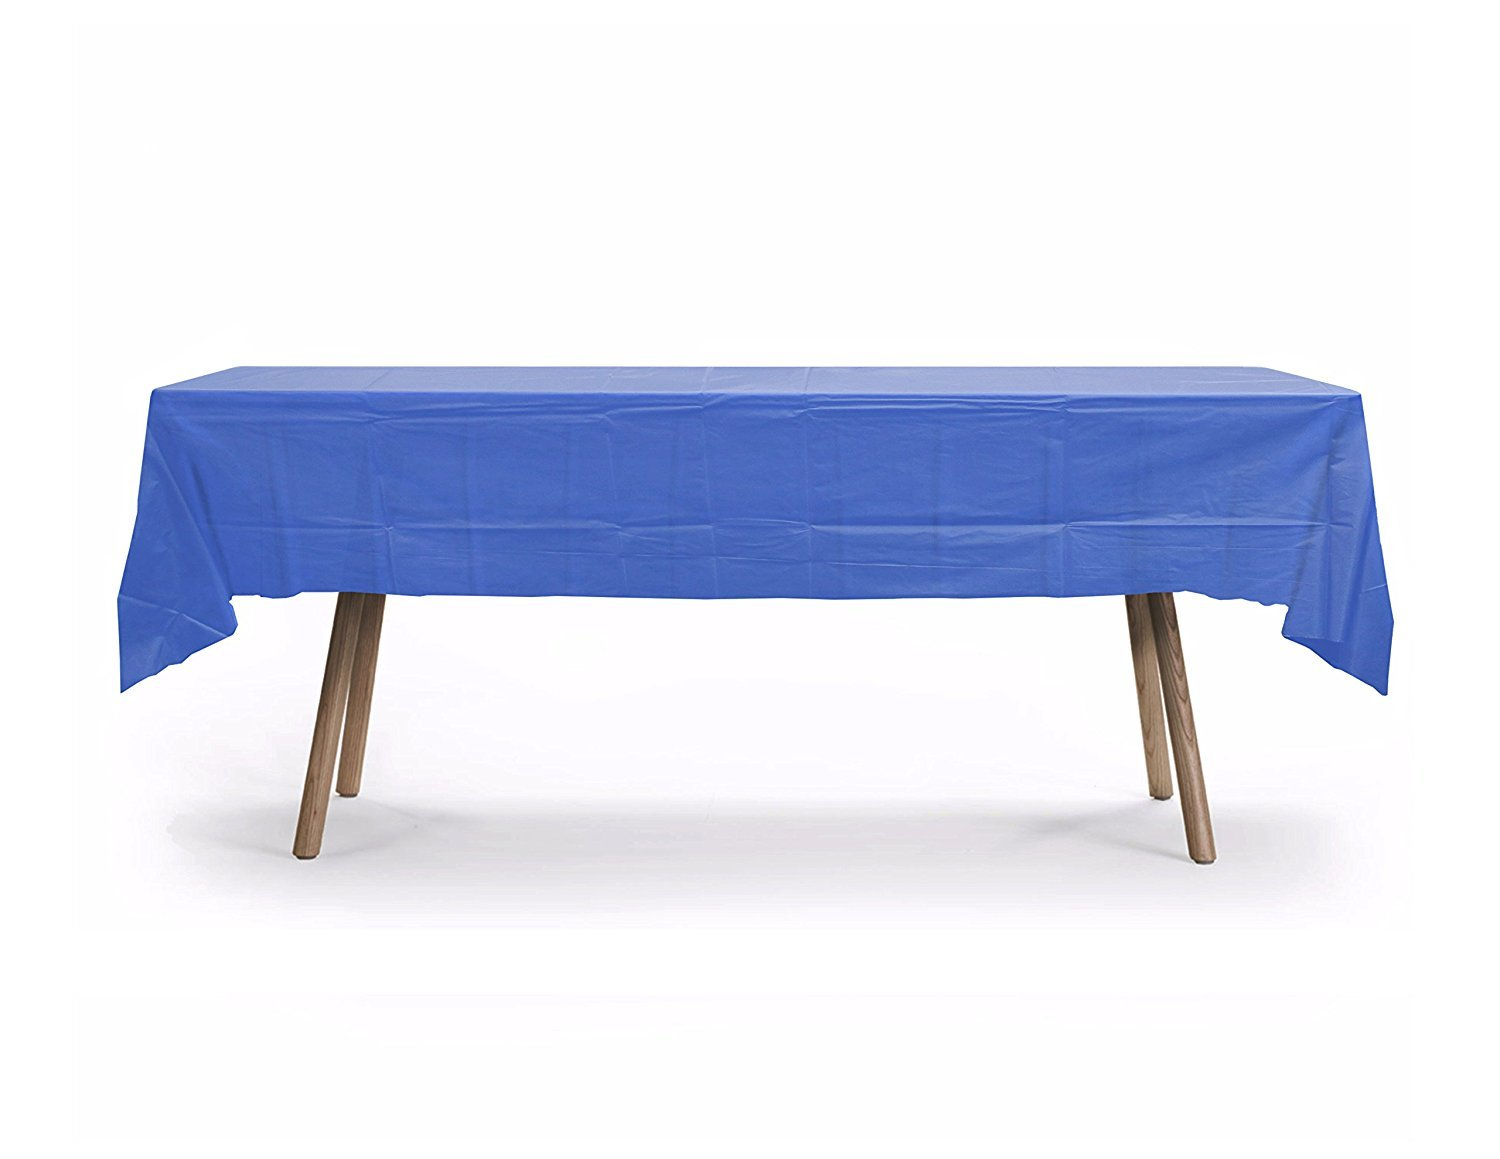 GiftExpressions 10-Pack  Premium 54 Inch. x 108 Inch. Disposal Rectangle Plastic Table Cover- Outdoor, Indoor Party, Picnic, Events, School Ceremony (Royal Blue)